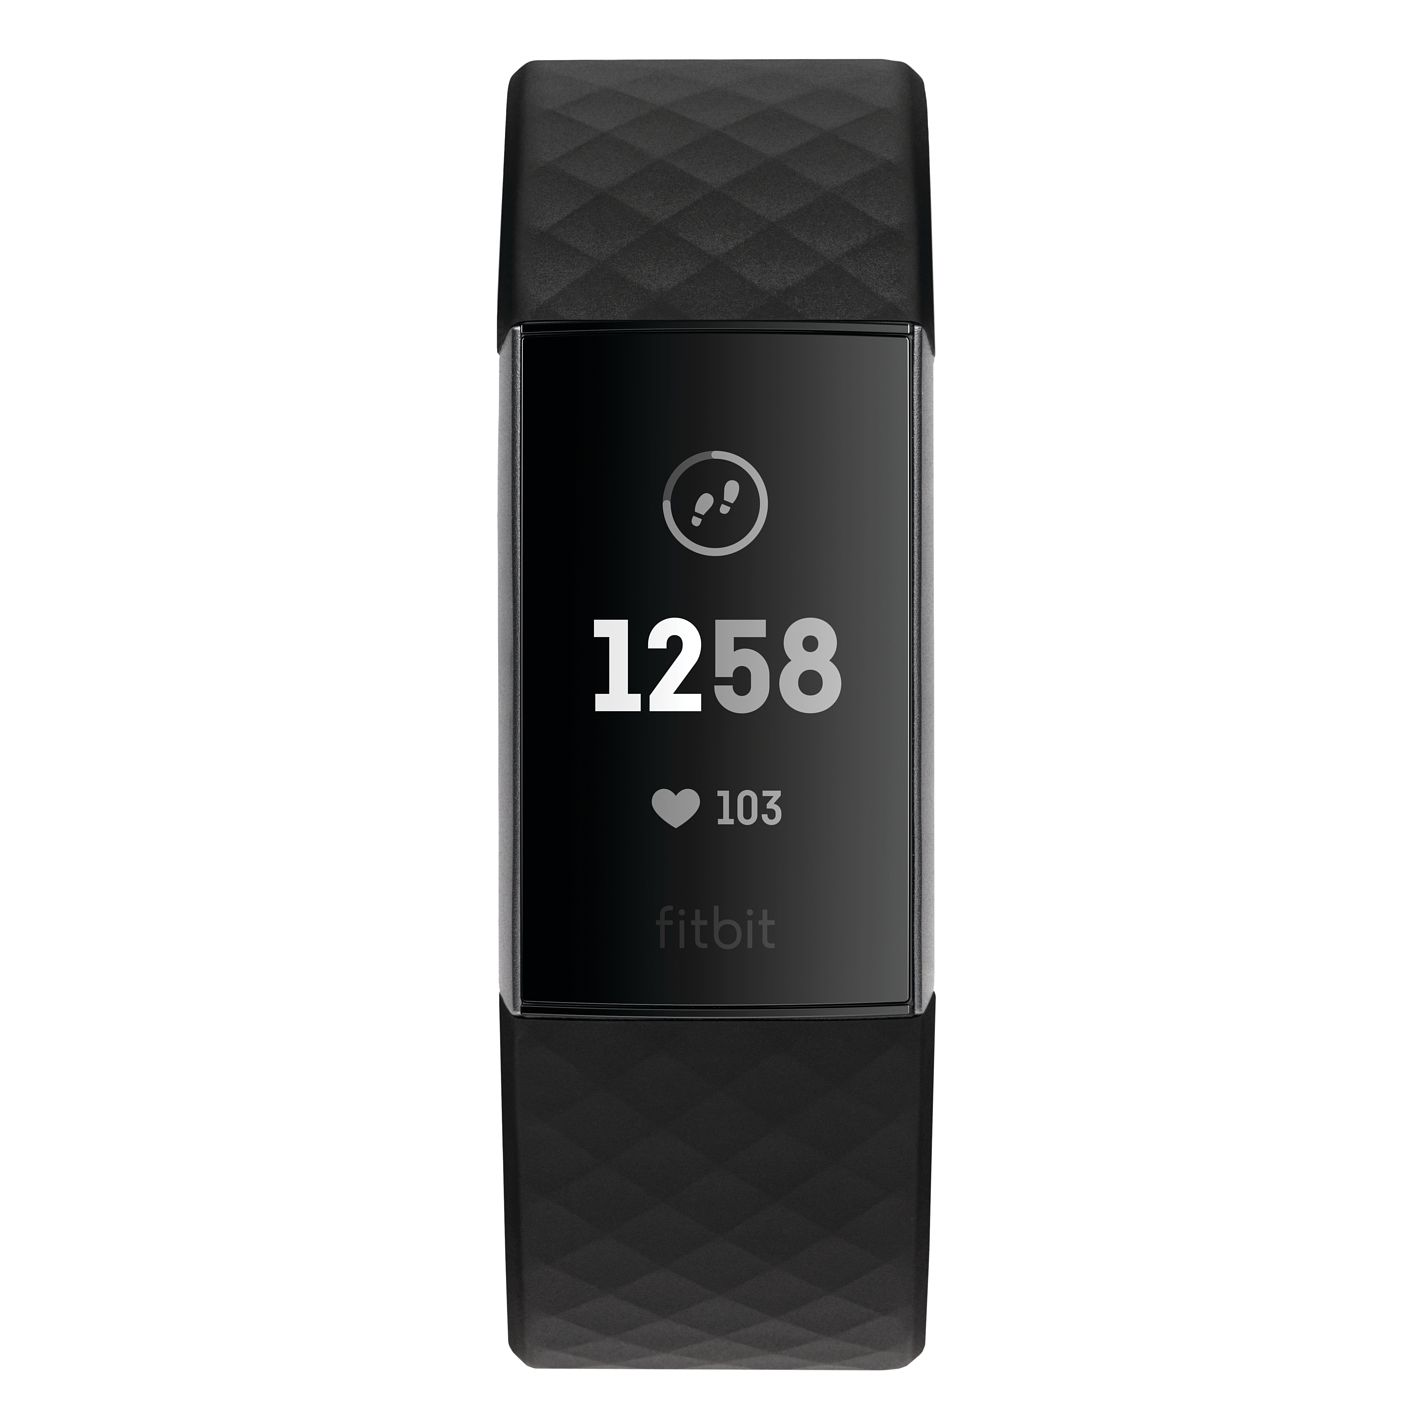 Fitbit Charge 3 Black Strap Fitness Tracker 208503 | H Samuel